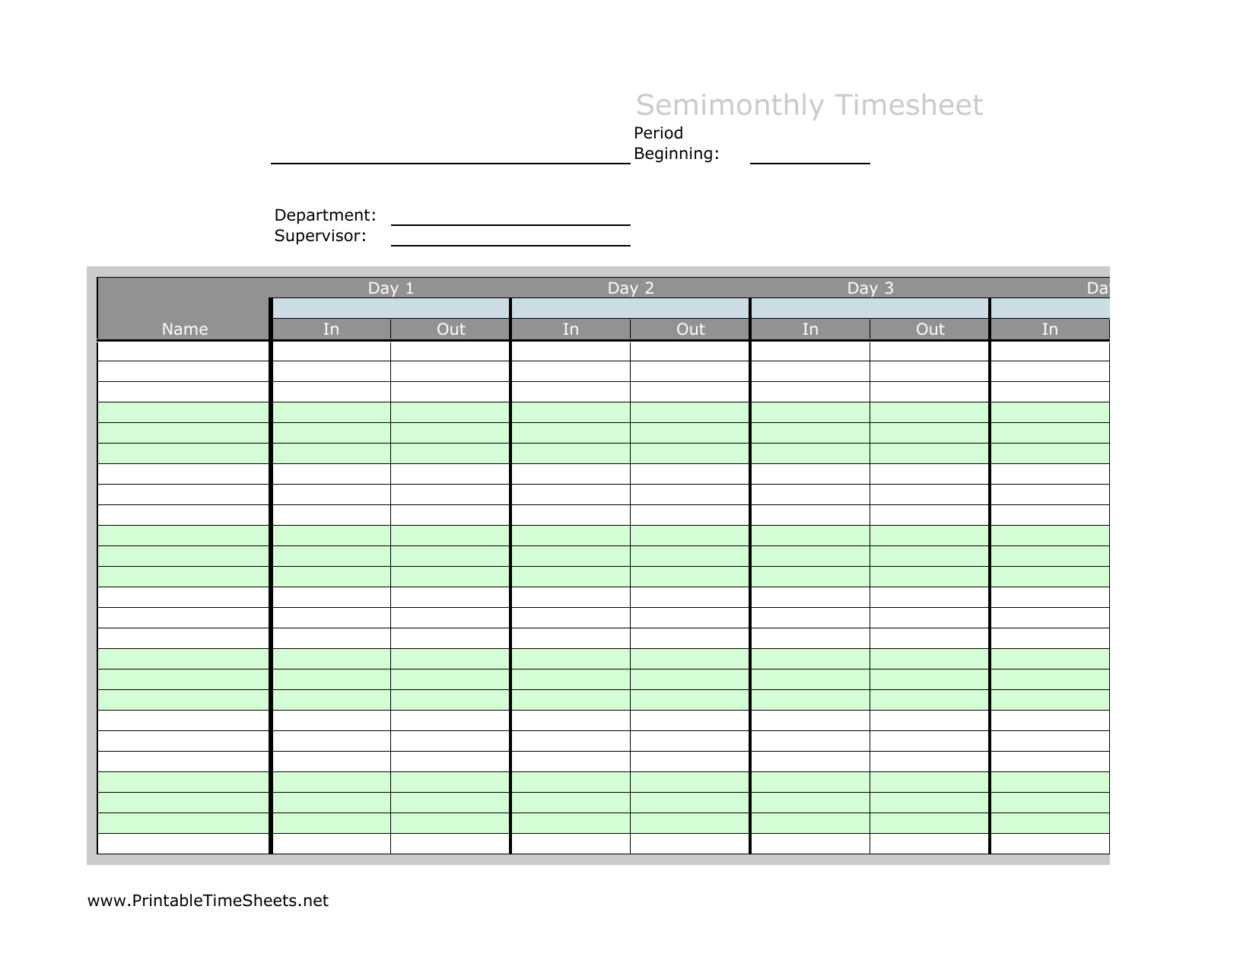 Timesheet Spreadsheet Pertaining To Download Semimonth Timesheet Template  Excel  Pdf  Rtf  Word